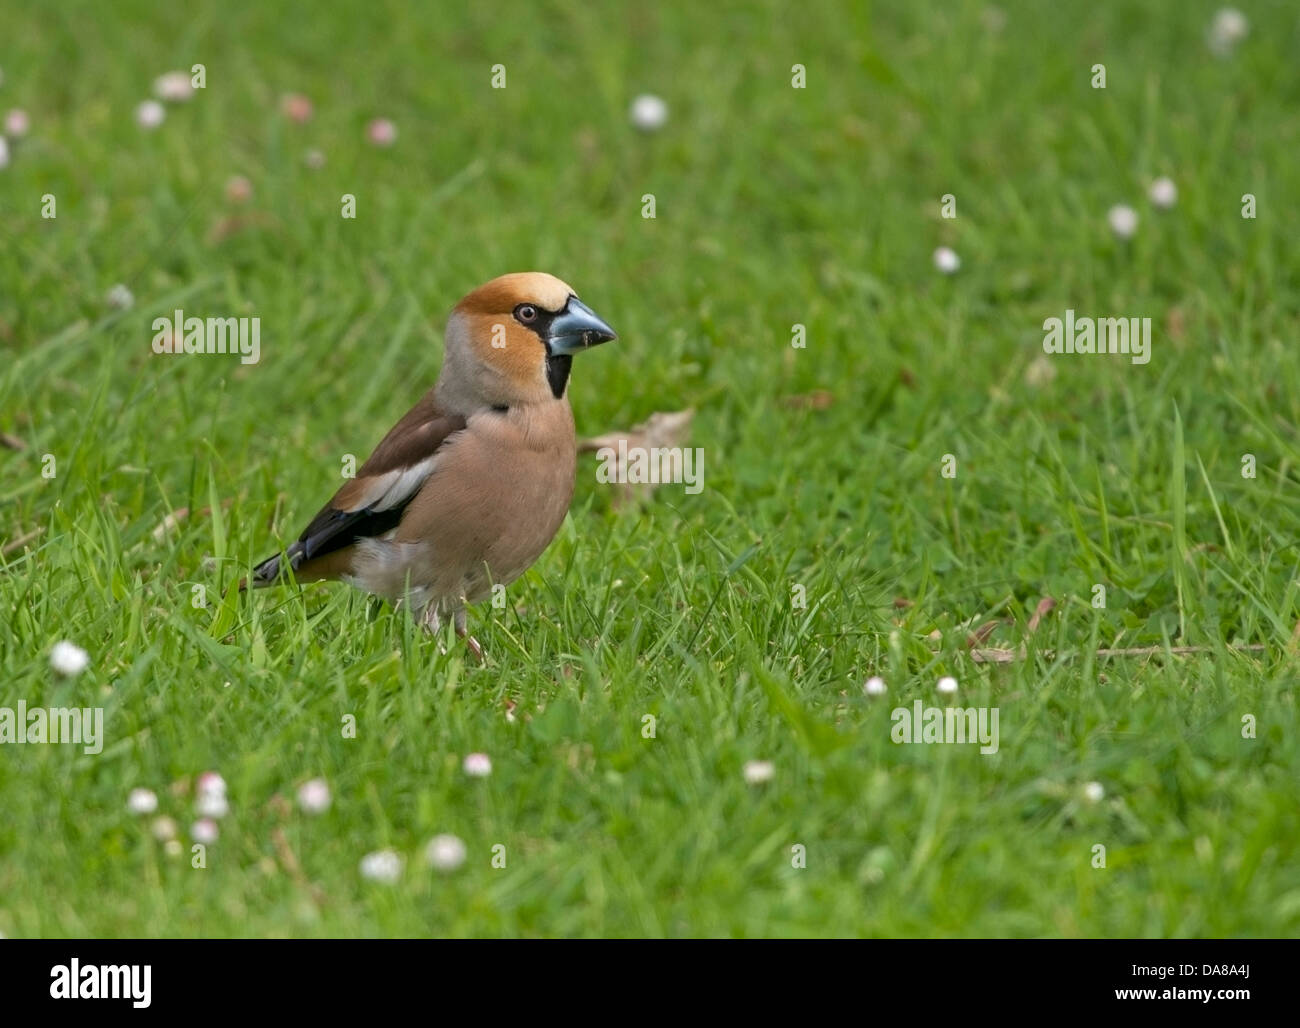 Hawfinch,  Coccothraustes coccothraustes, feeding on seeds which were dropped on the grass, during May - Stock Image